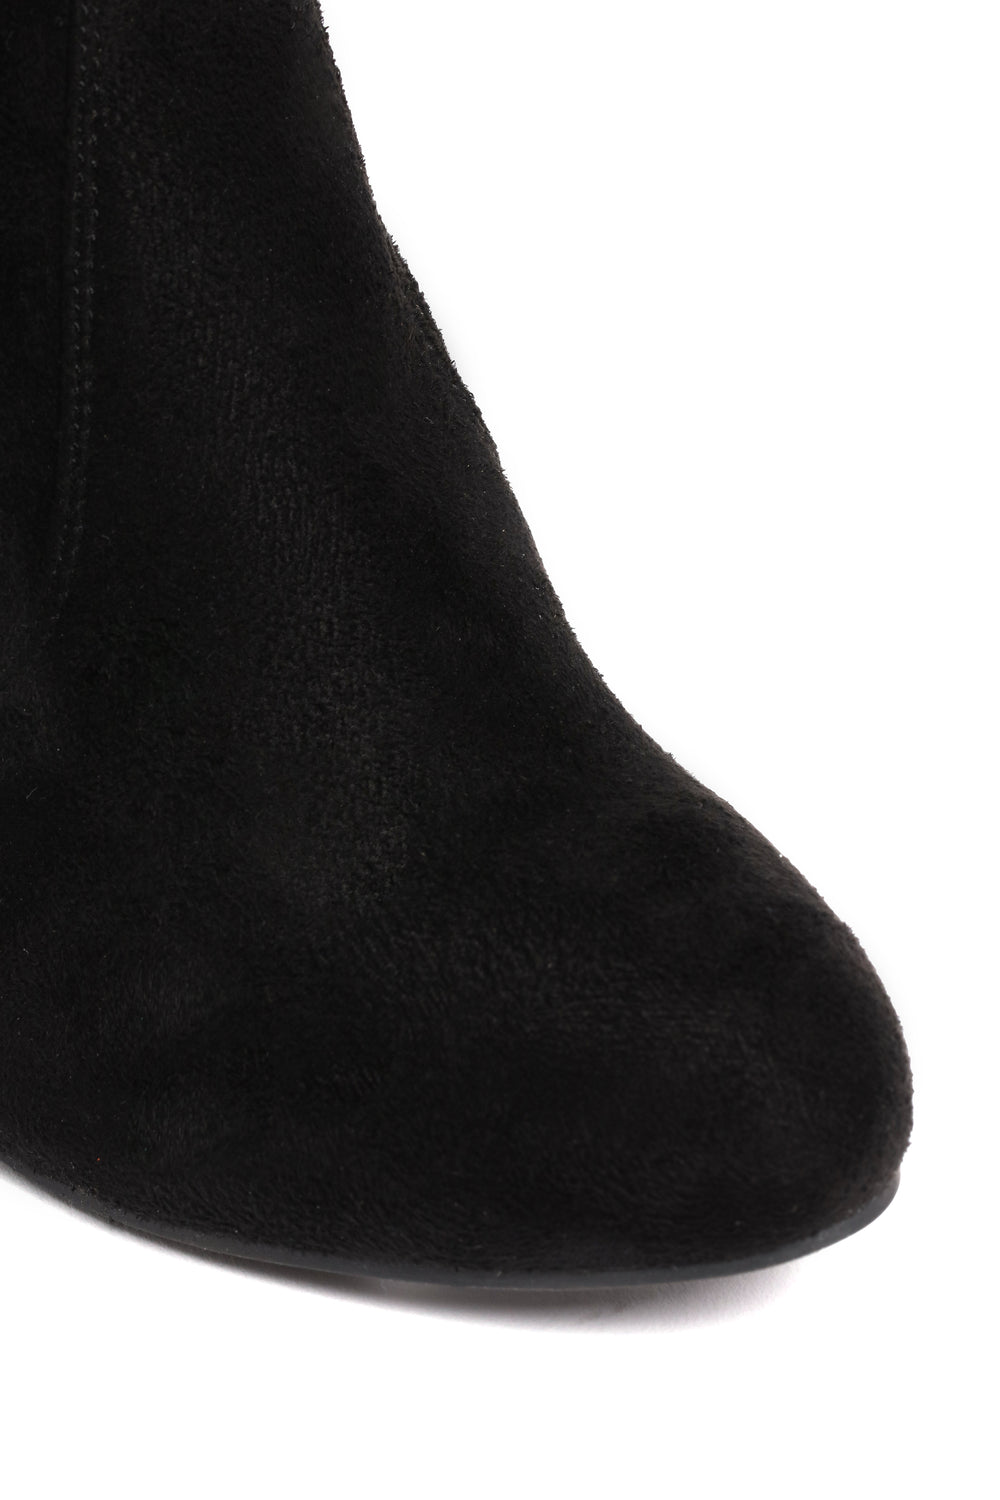 In This Together Heeled Boot - Black